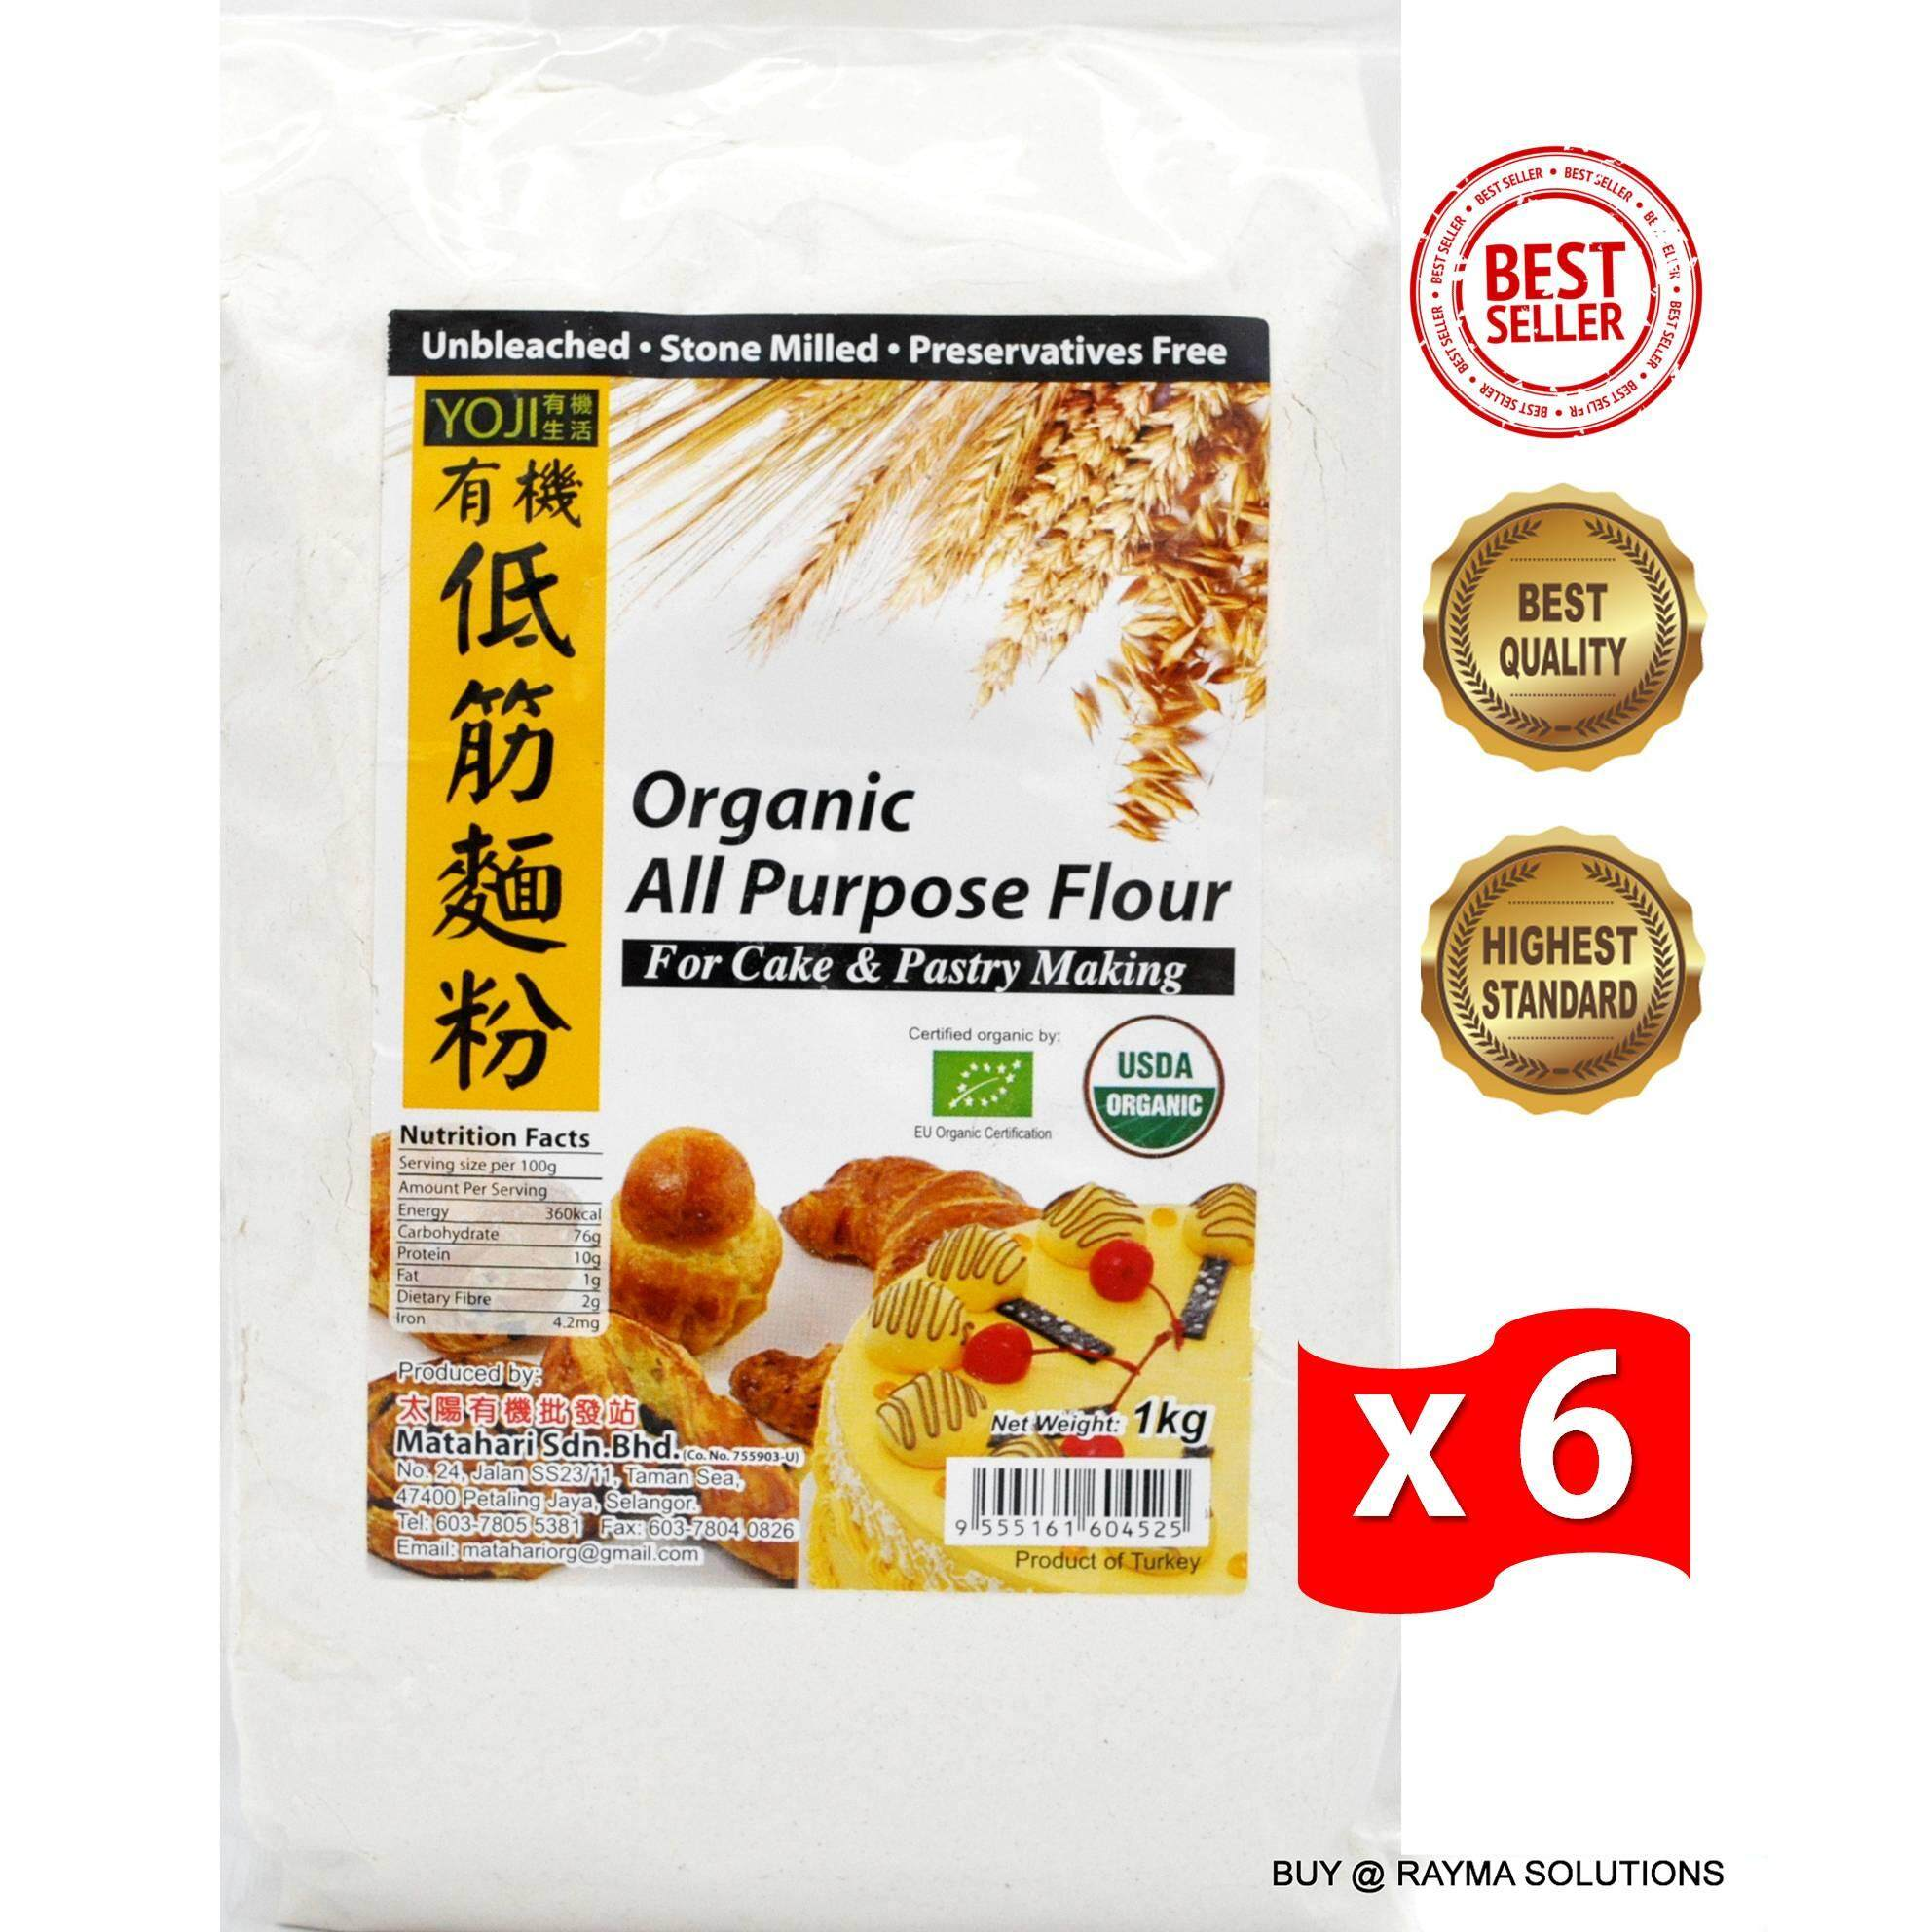 [ Best Deal ] MH FOOD Organic All Purpose Flour, for Cake and Pastry Making, 1kg (6 Packs)